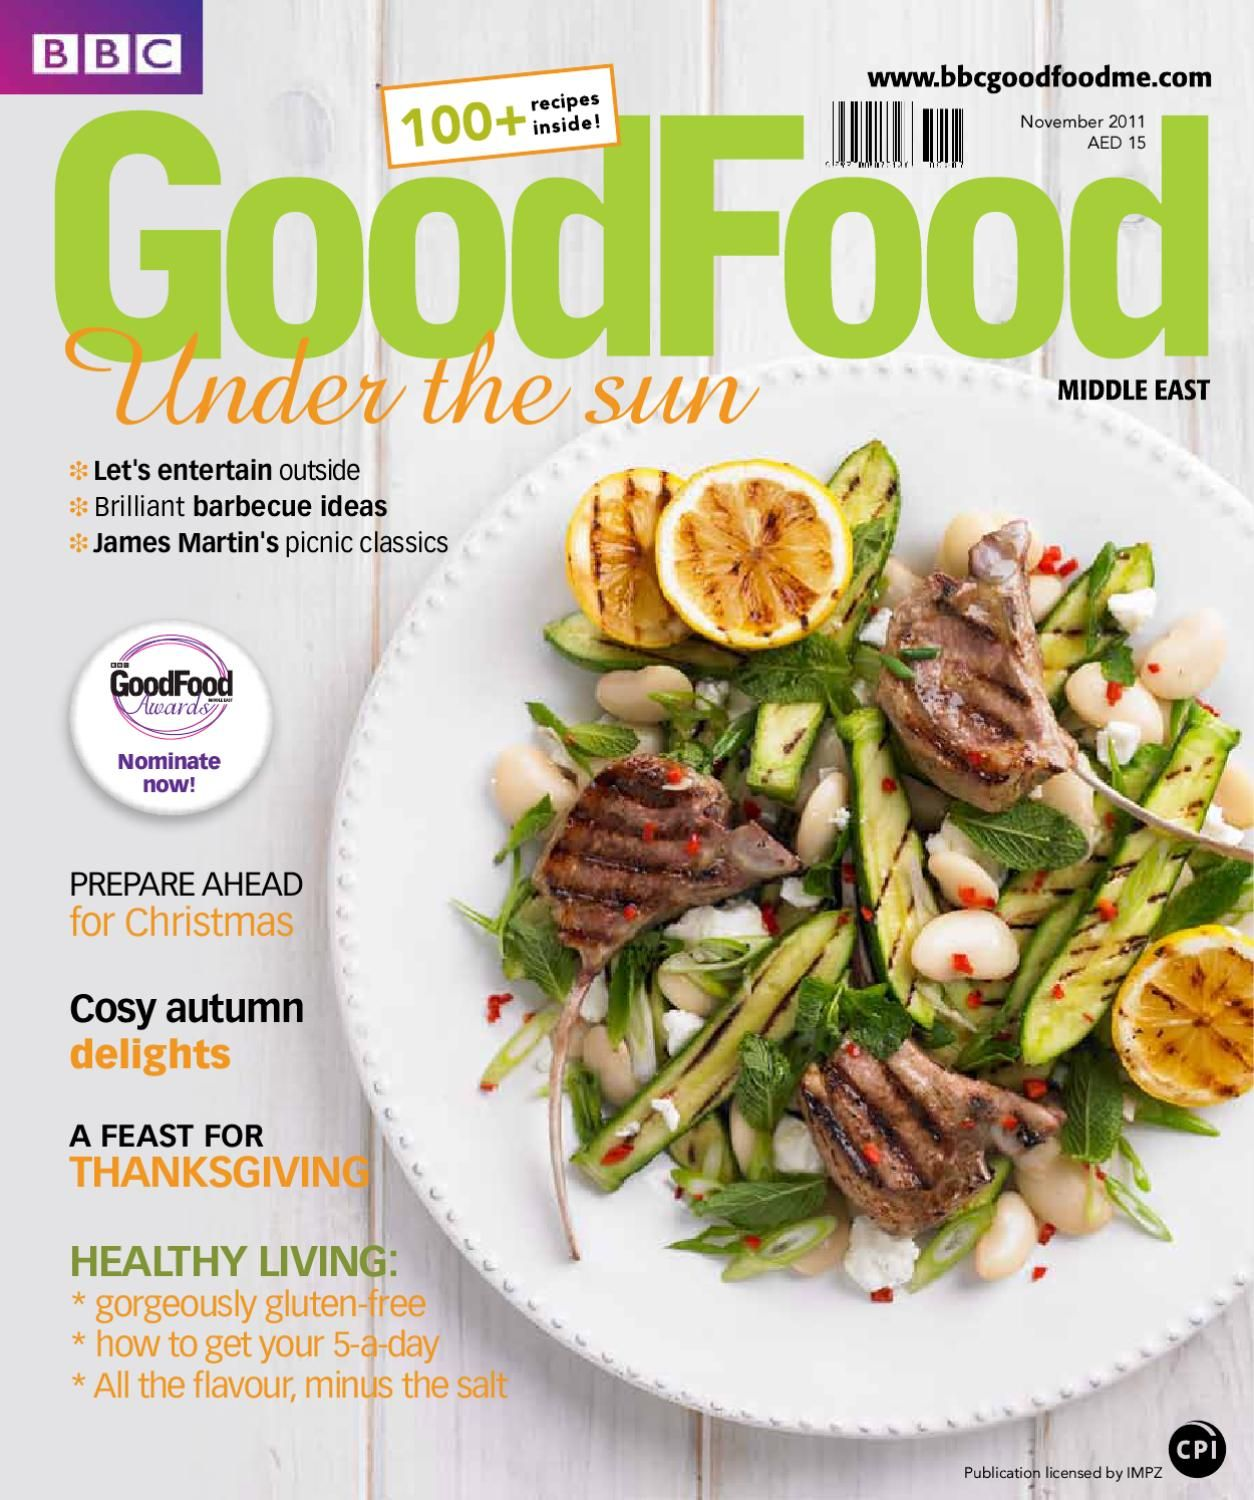 Bbc good food middle east magazine everyday dishes giveaway and issue bbc good food middle east is a must have for everyone who loves cooking and eating its full of mouth watering ideas for quick everyday dishes forumfinder Gallery